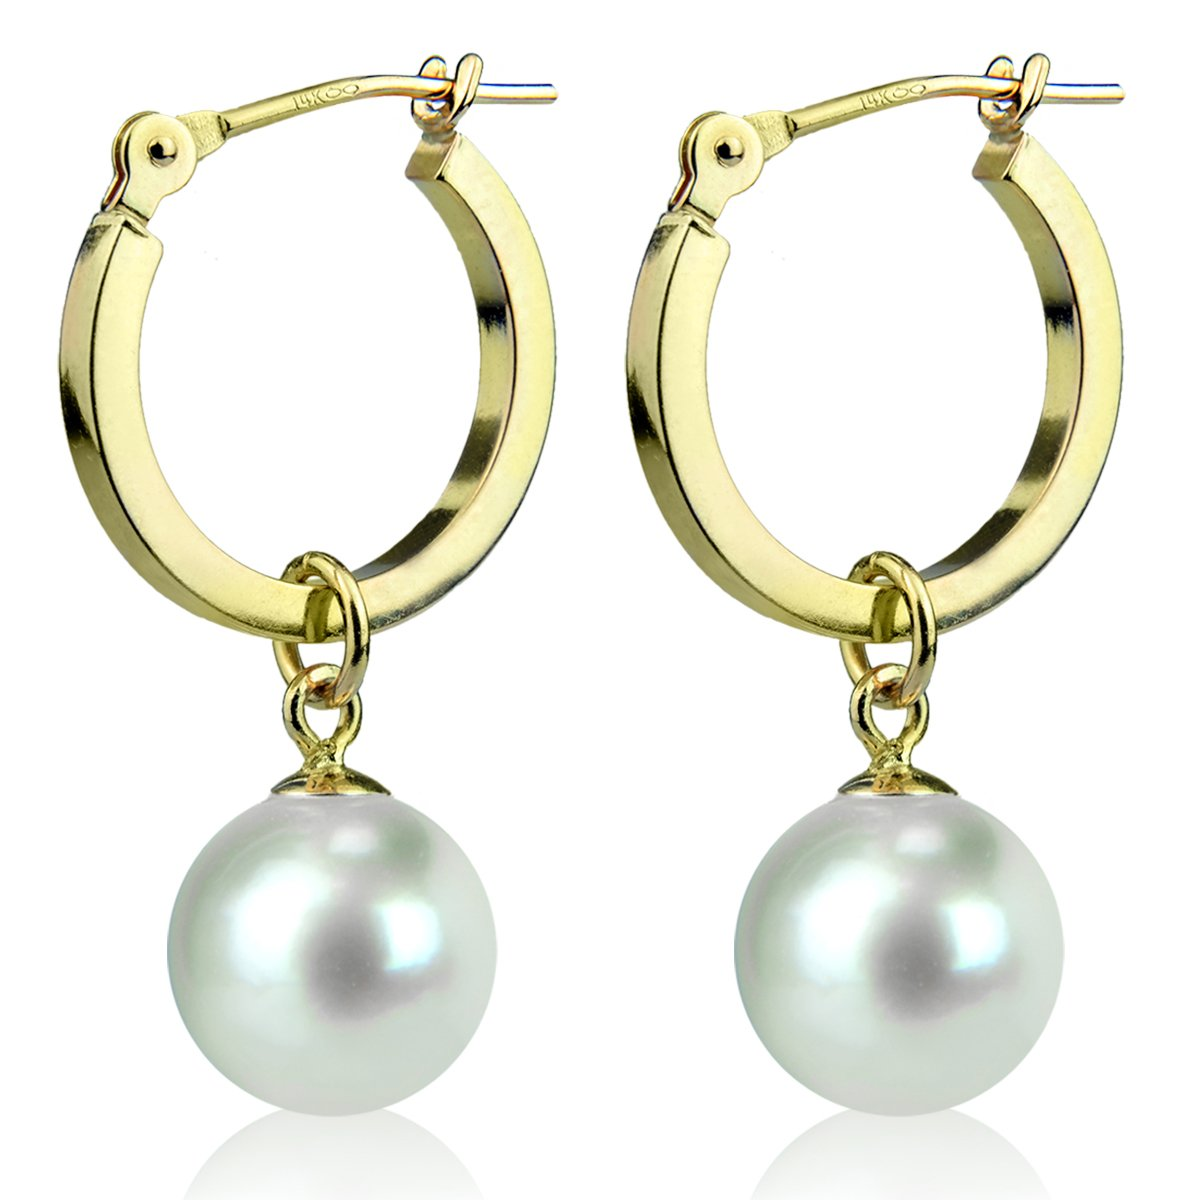 14K Yellow Gold Round White Freshwater Cultured Pearl Hoop Dangle Earrings 7mm by La Regis Jewelry (Image #2)